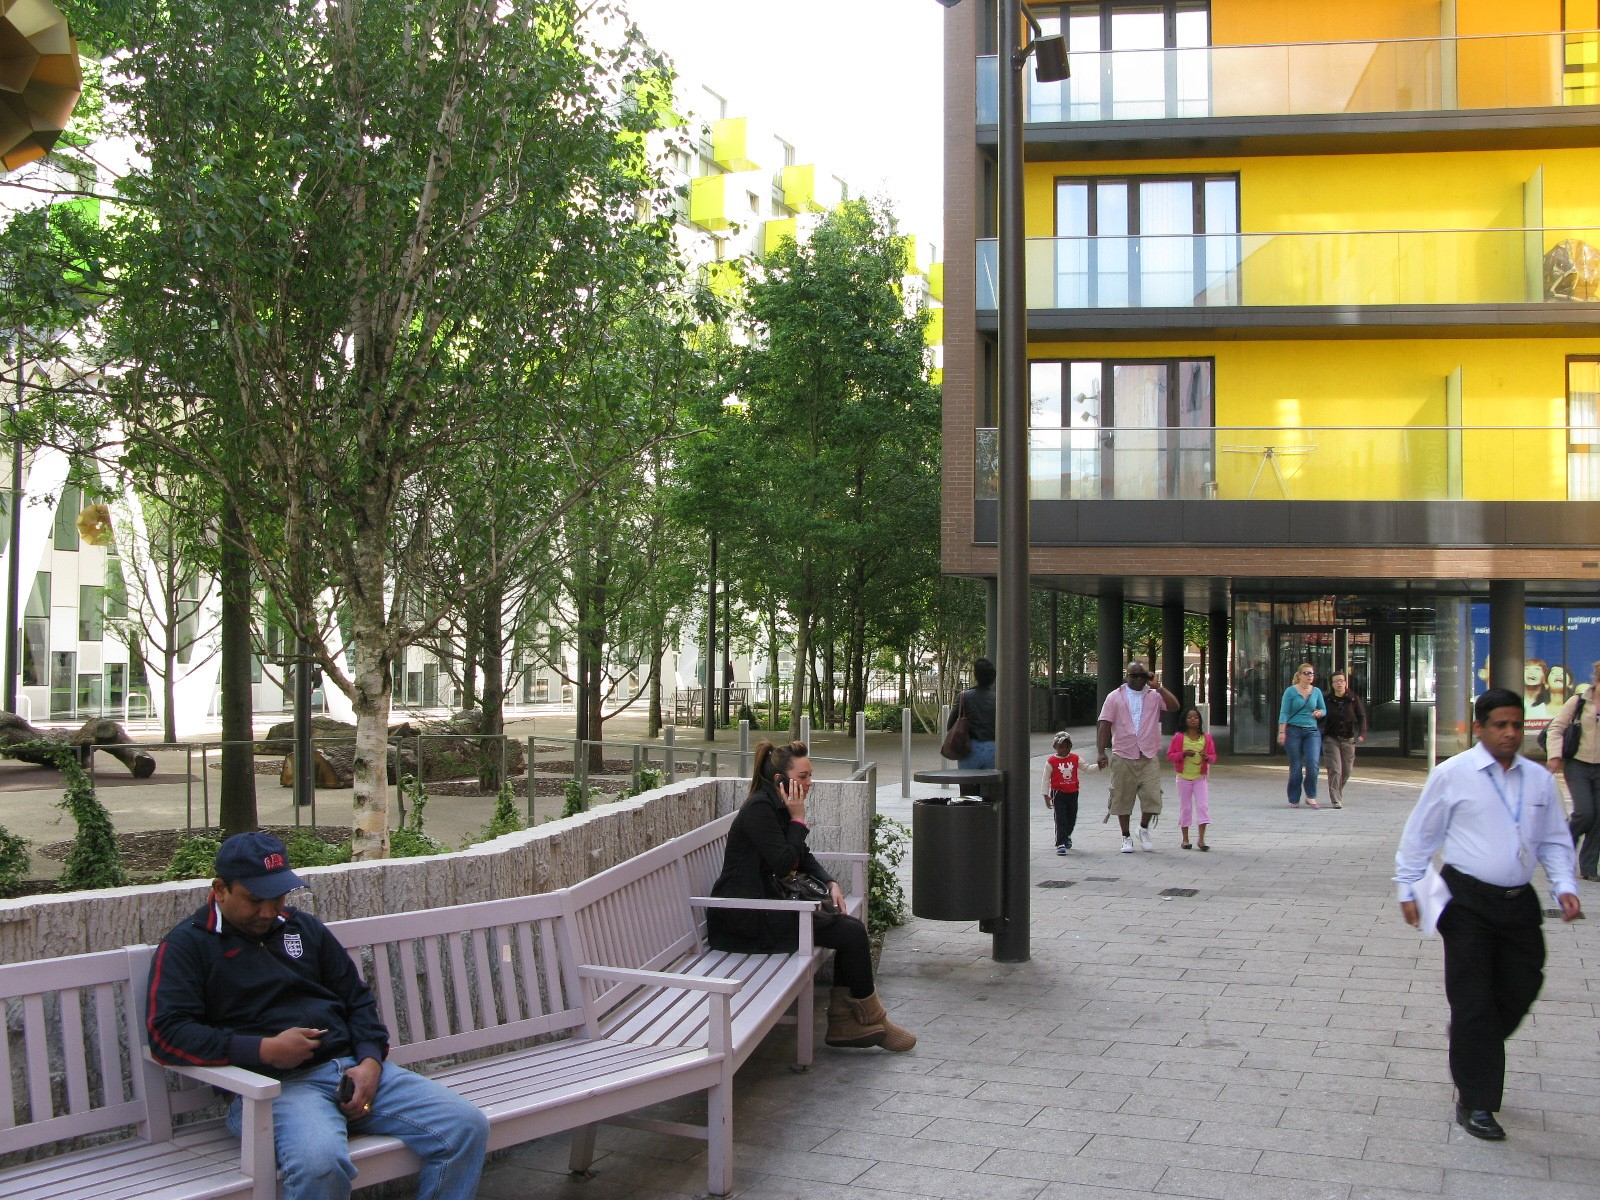 People sitting on a long bench and walking through Barking Town Centre, with residential development and trees in the background.